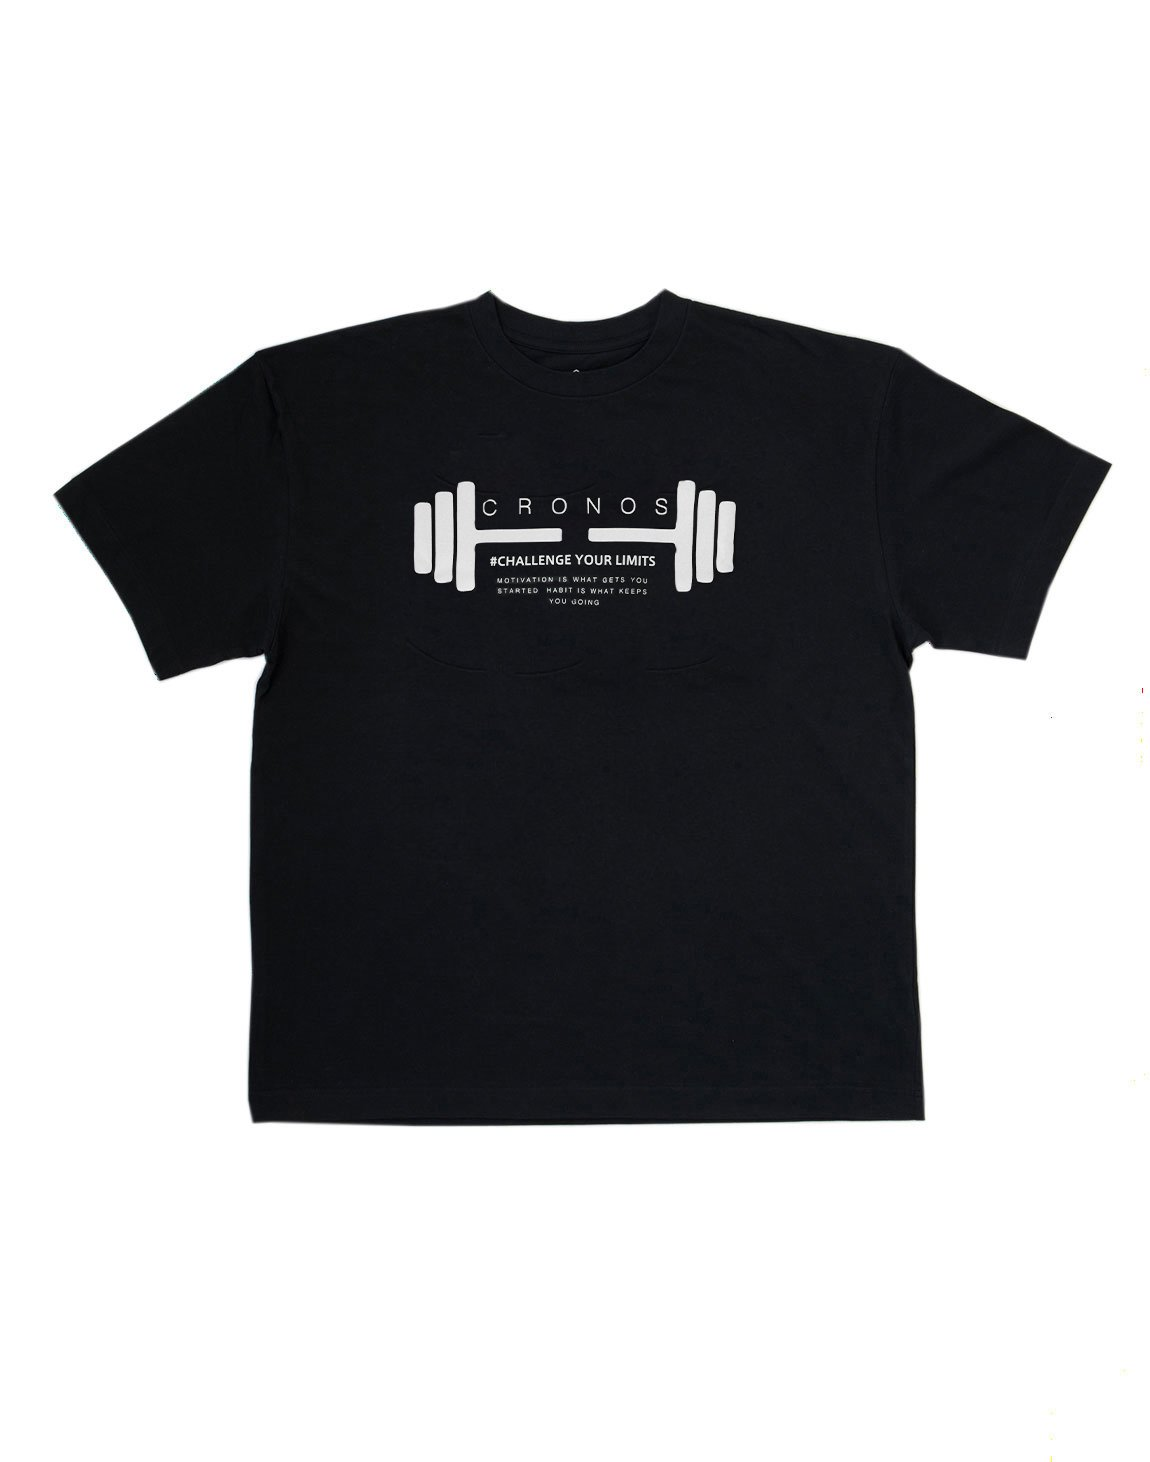 <img class='new_mark_img1' src='https://img.shop-pro.jp/img/new/icons1.gif' style='border:none;display:inline;margin:0px;padding:0px;width:auto;' />CRONOS DUMBBELL LOGO T-SHIRTS【BLACK】